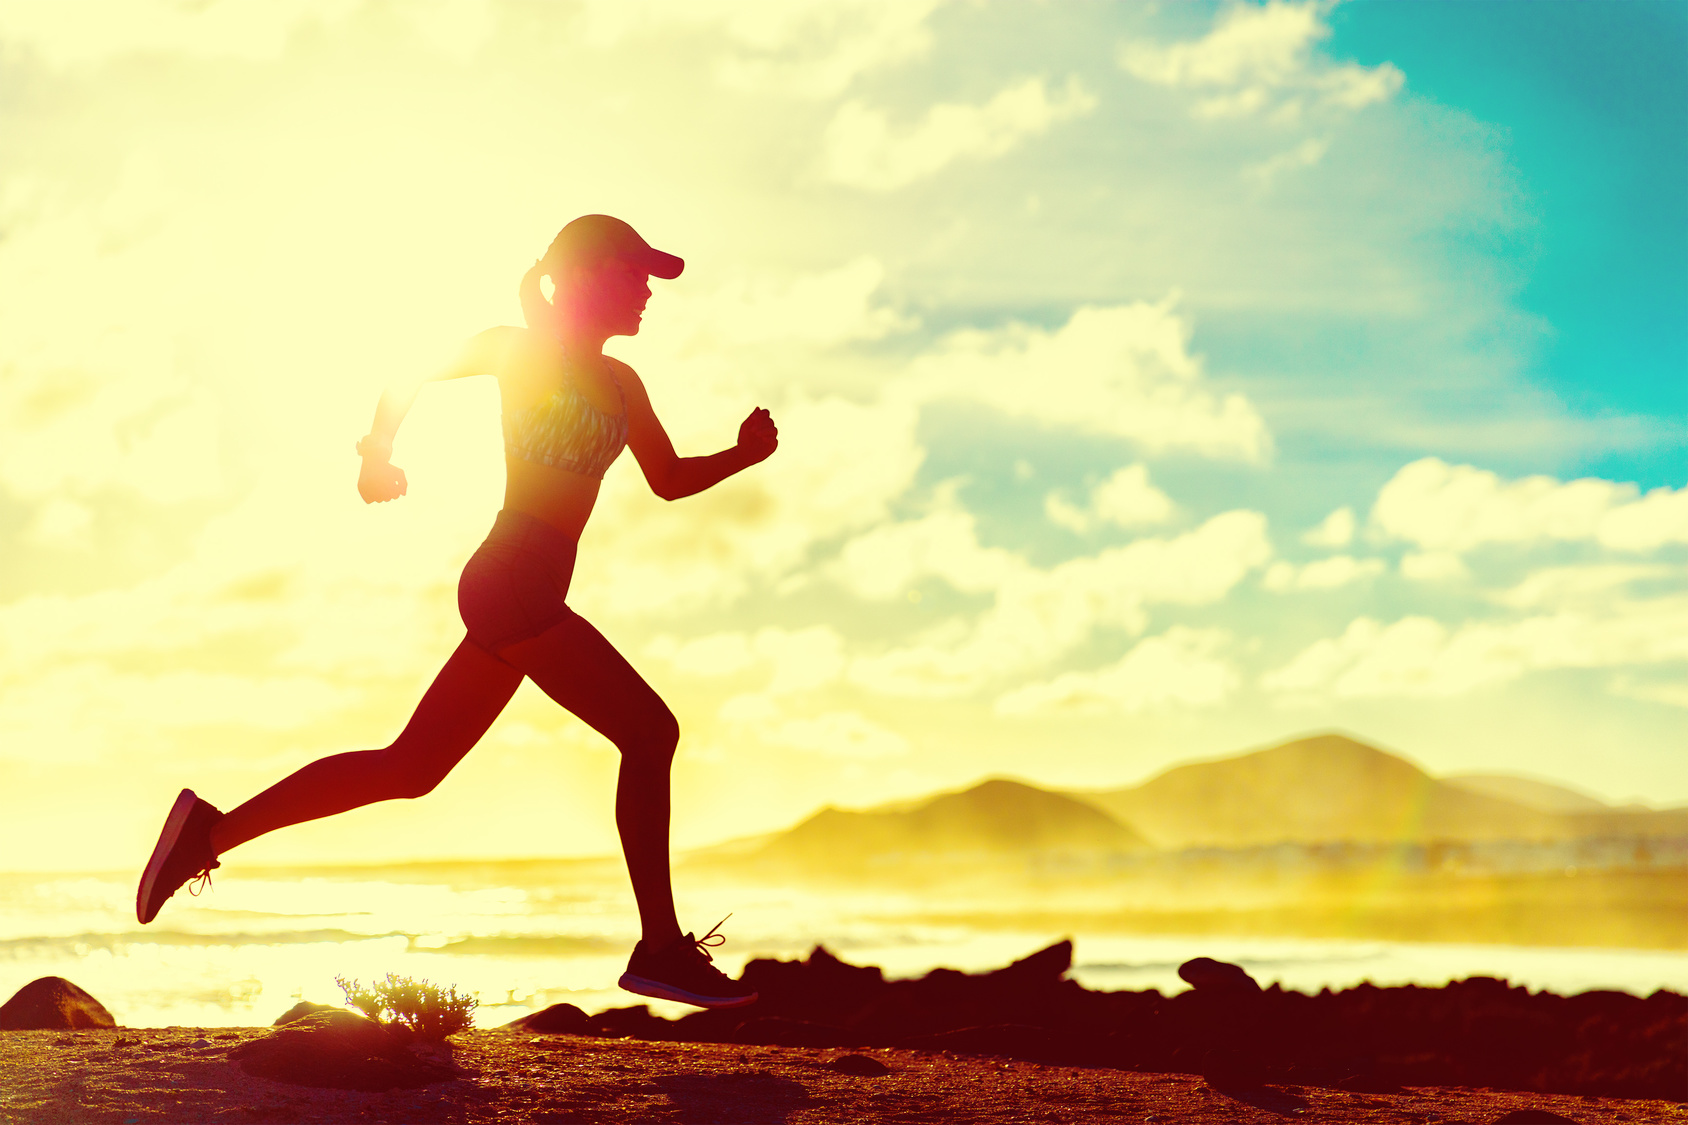 Jogging Run Time 4 Simple Ways To Prevent Sunburns When Running In The Summer